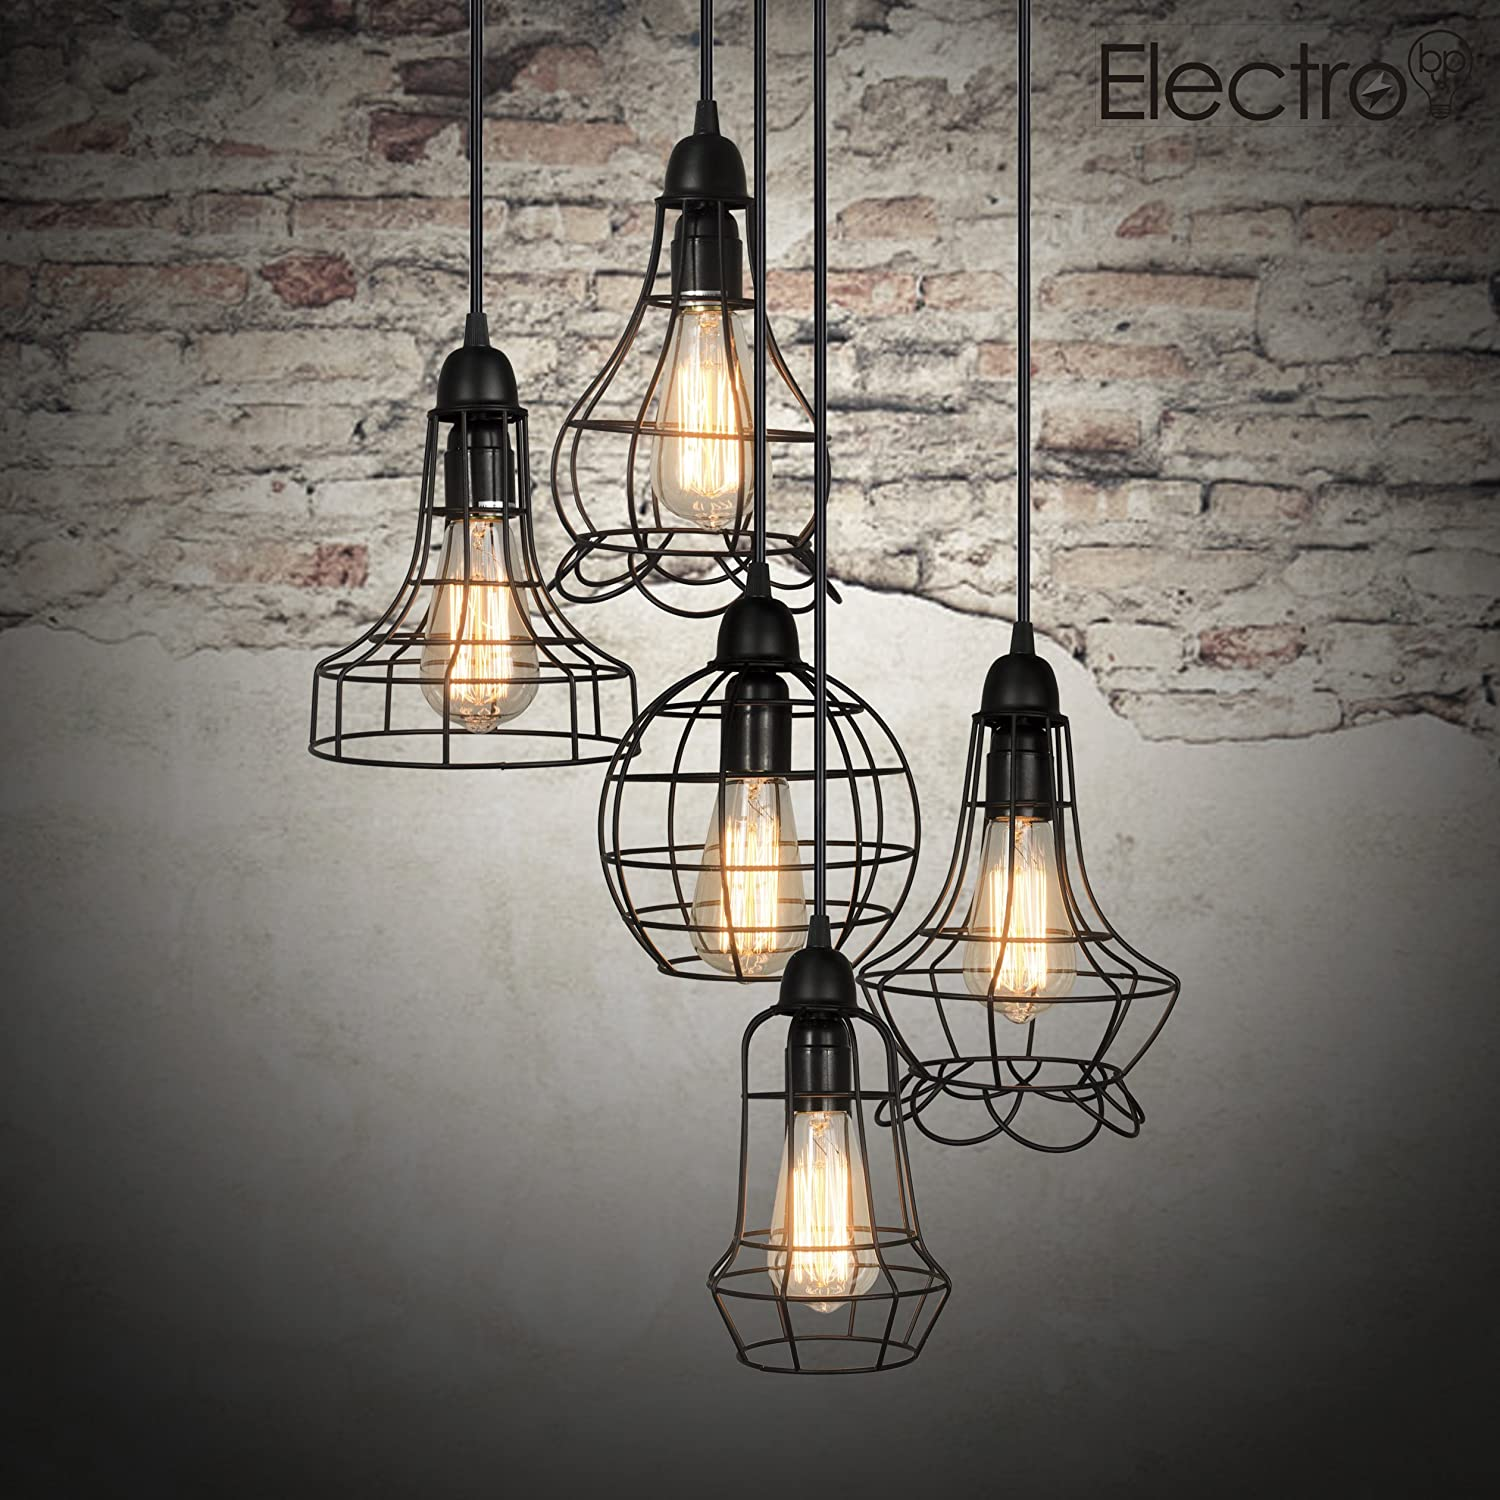 Perfect Electro bp rustic Barn Metal Chandelier Max w with Light Black Finish Bulb Included